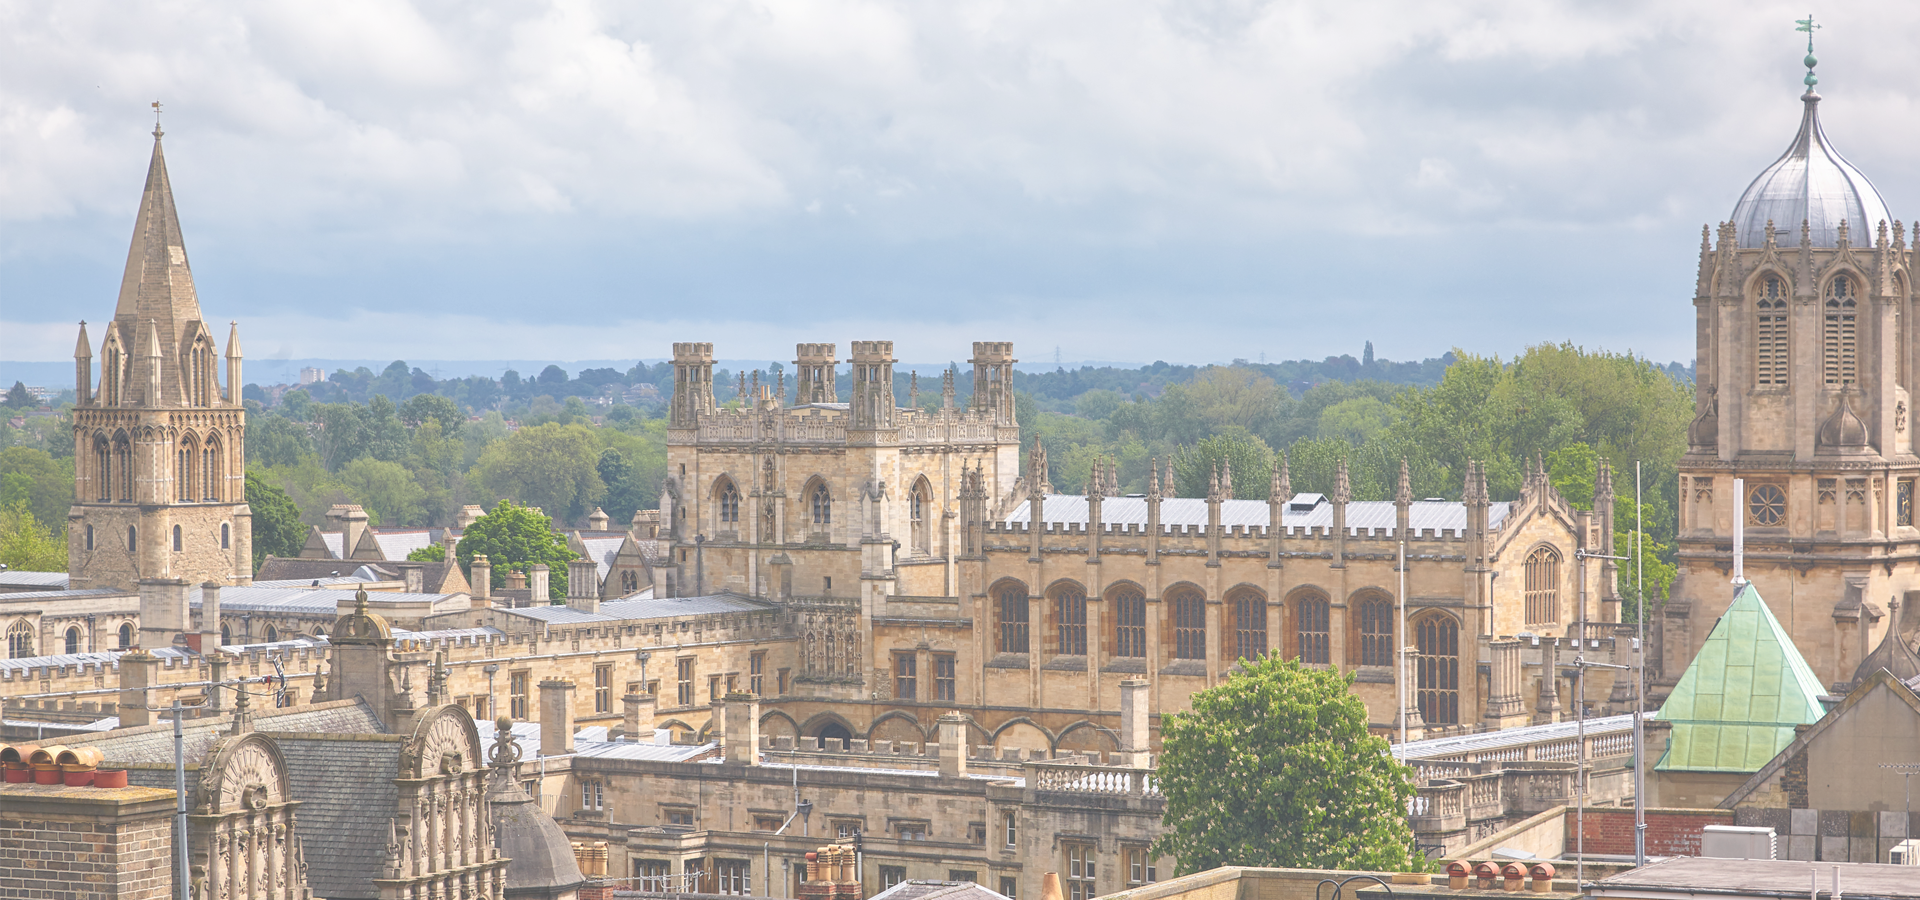 Oxford, Oxfordshire, England, Great Britain